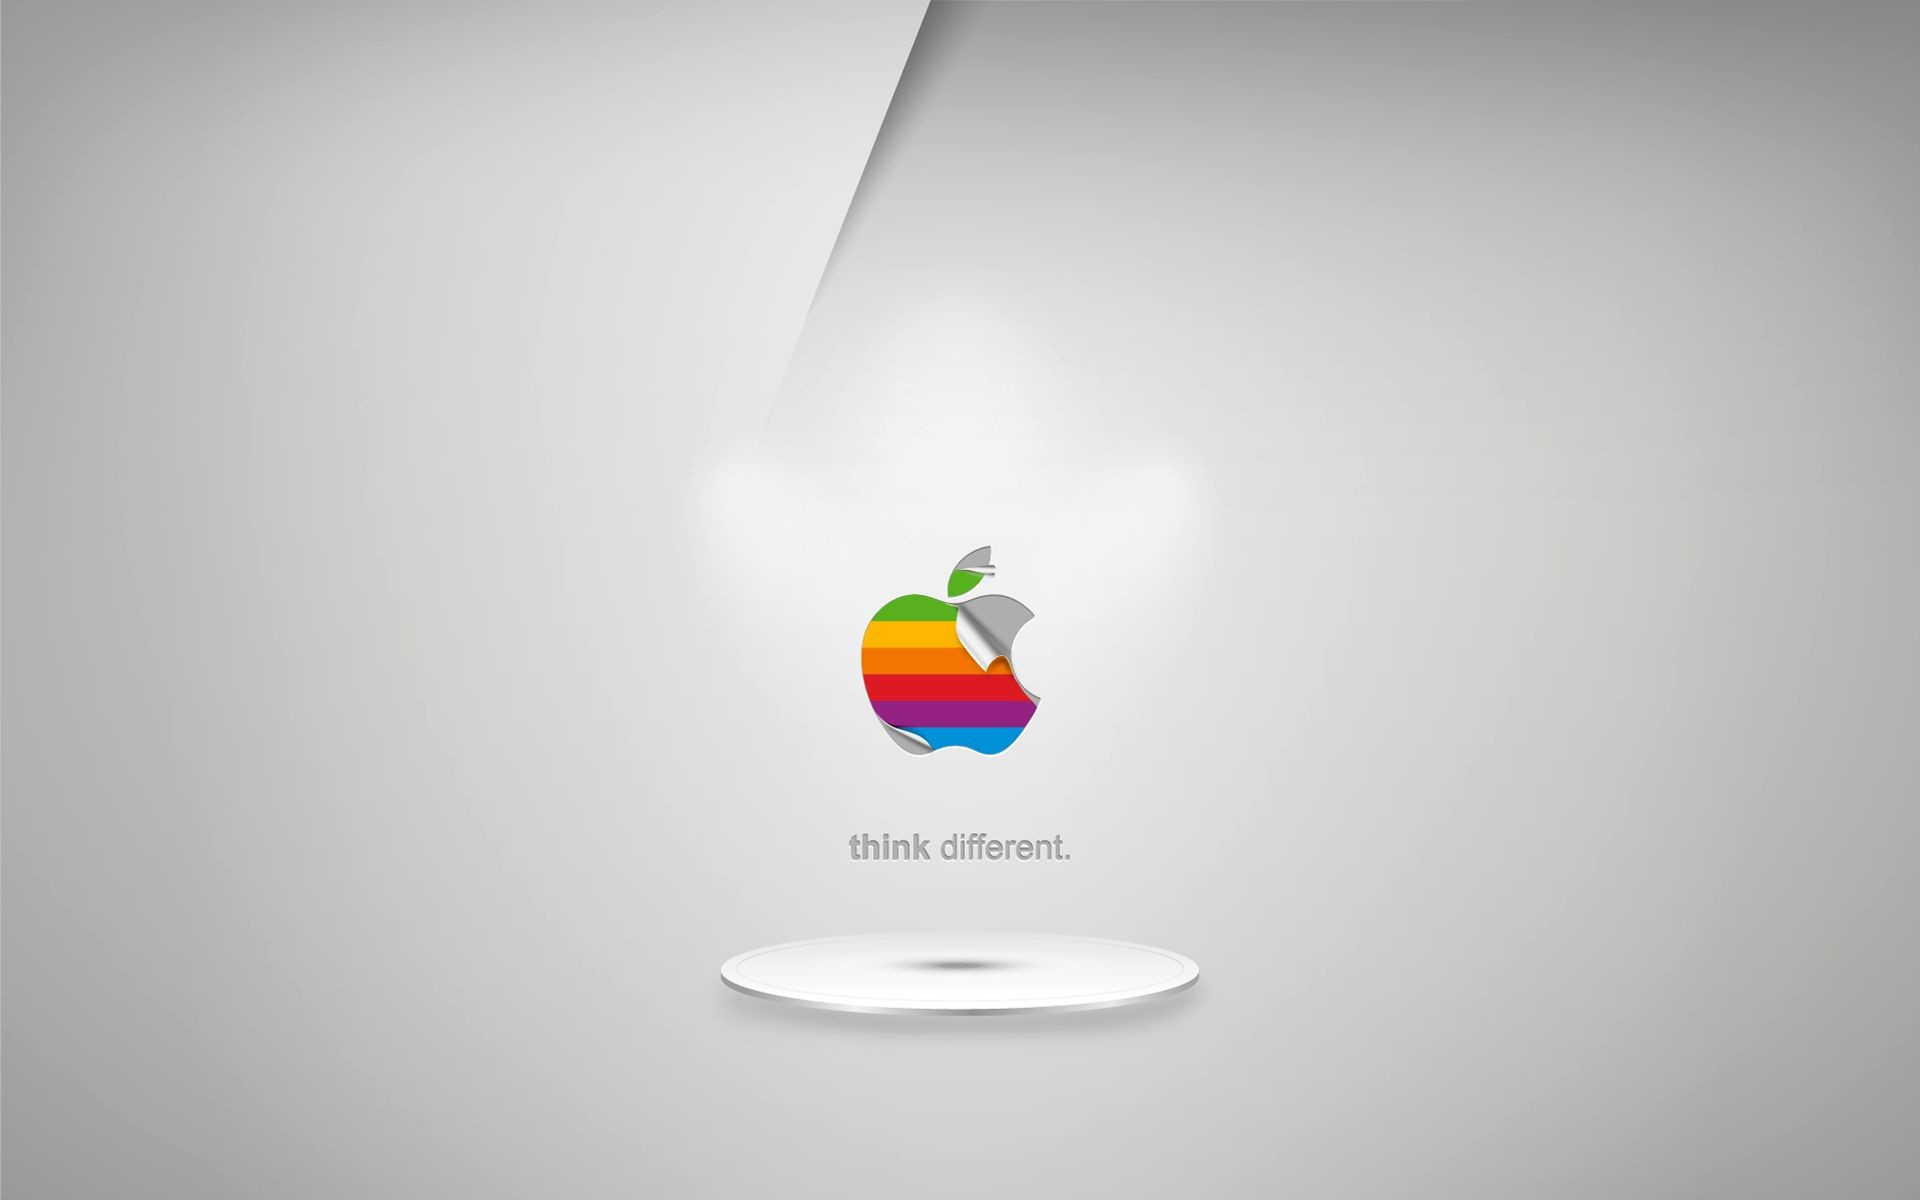 Think Different Apple Wallpaper 73 Images